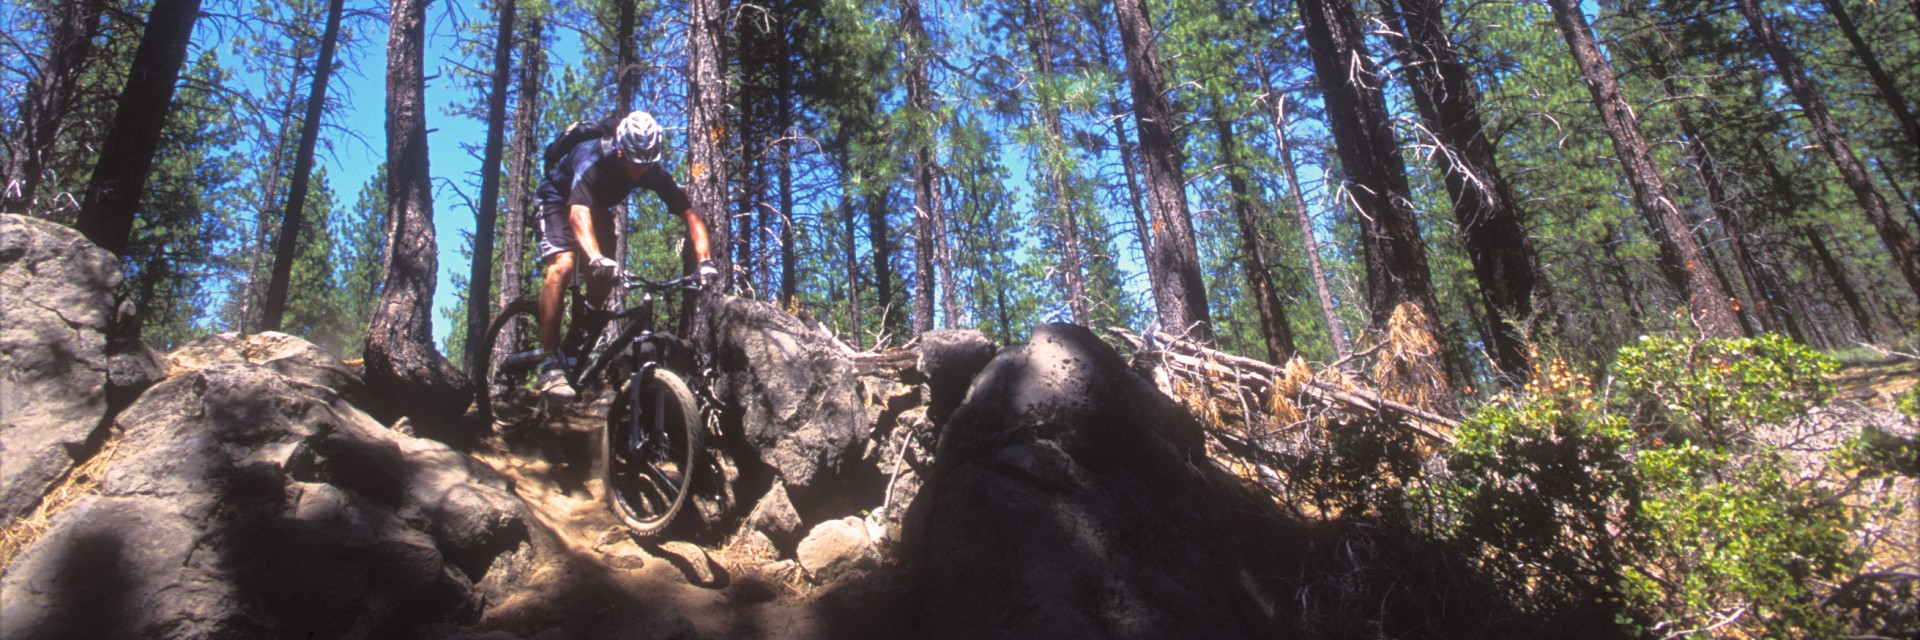 Steep down on Oregon Singletrack near Bend, OR